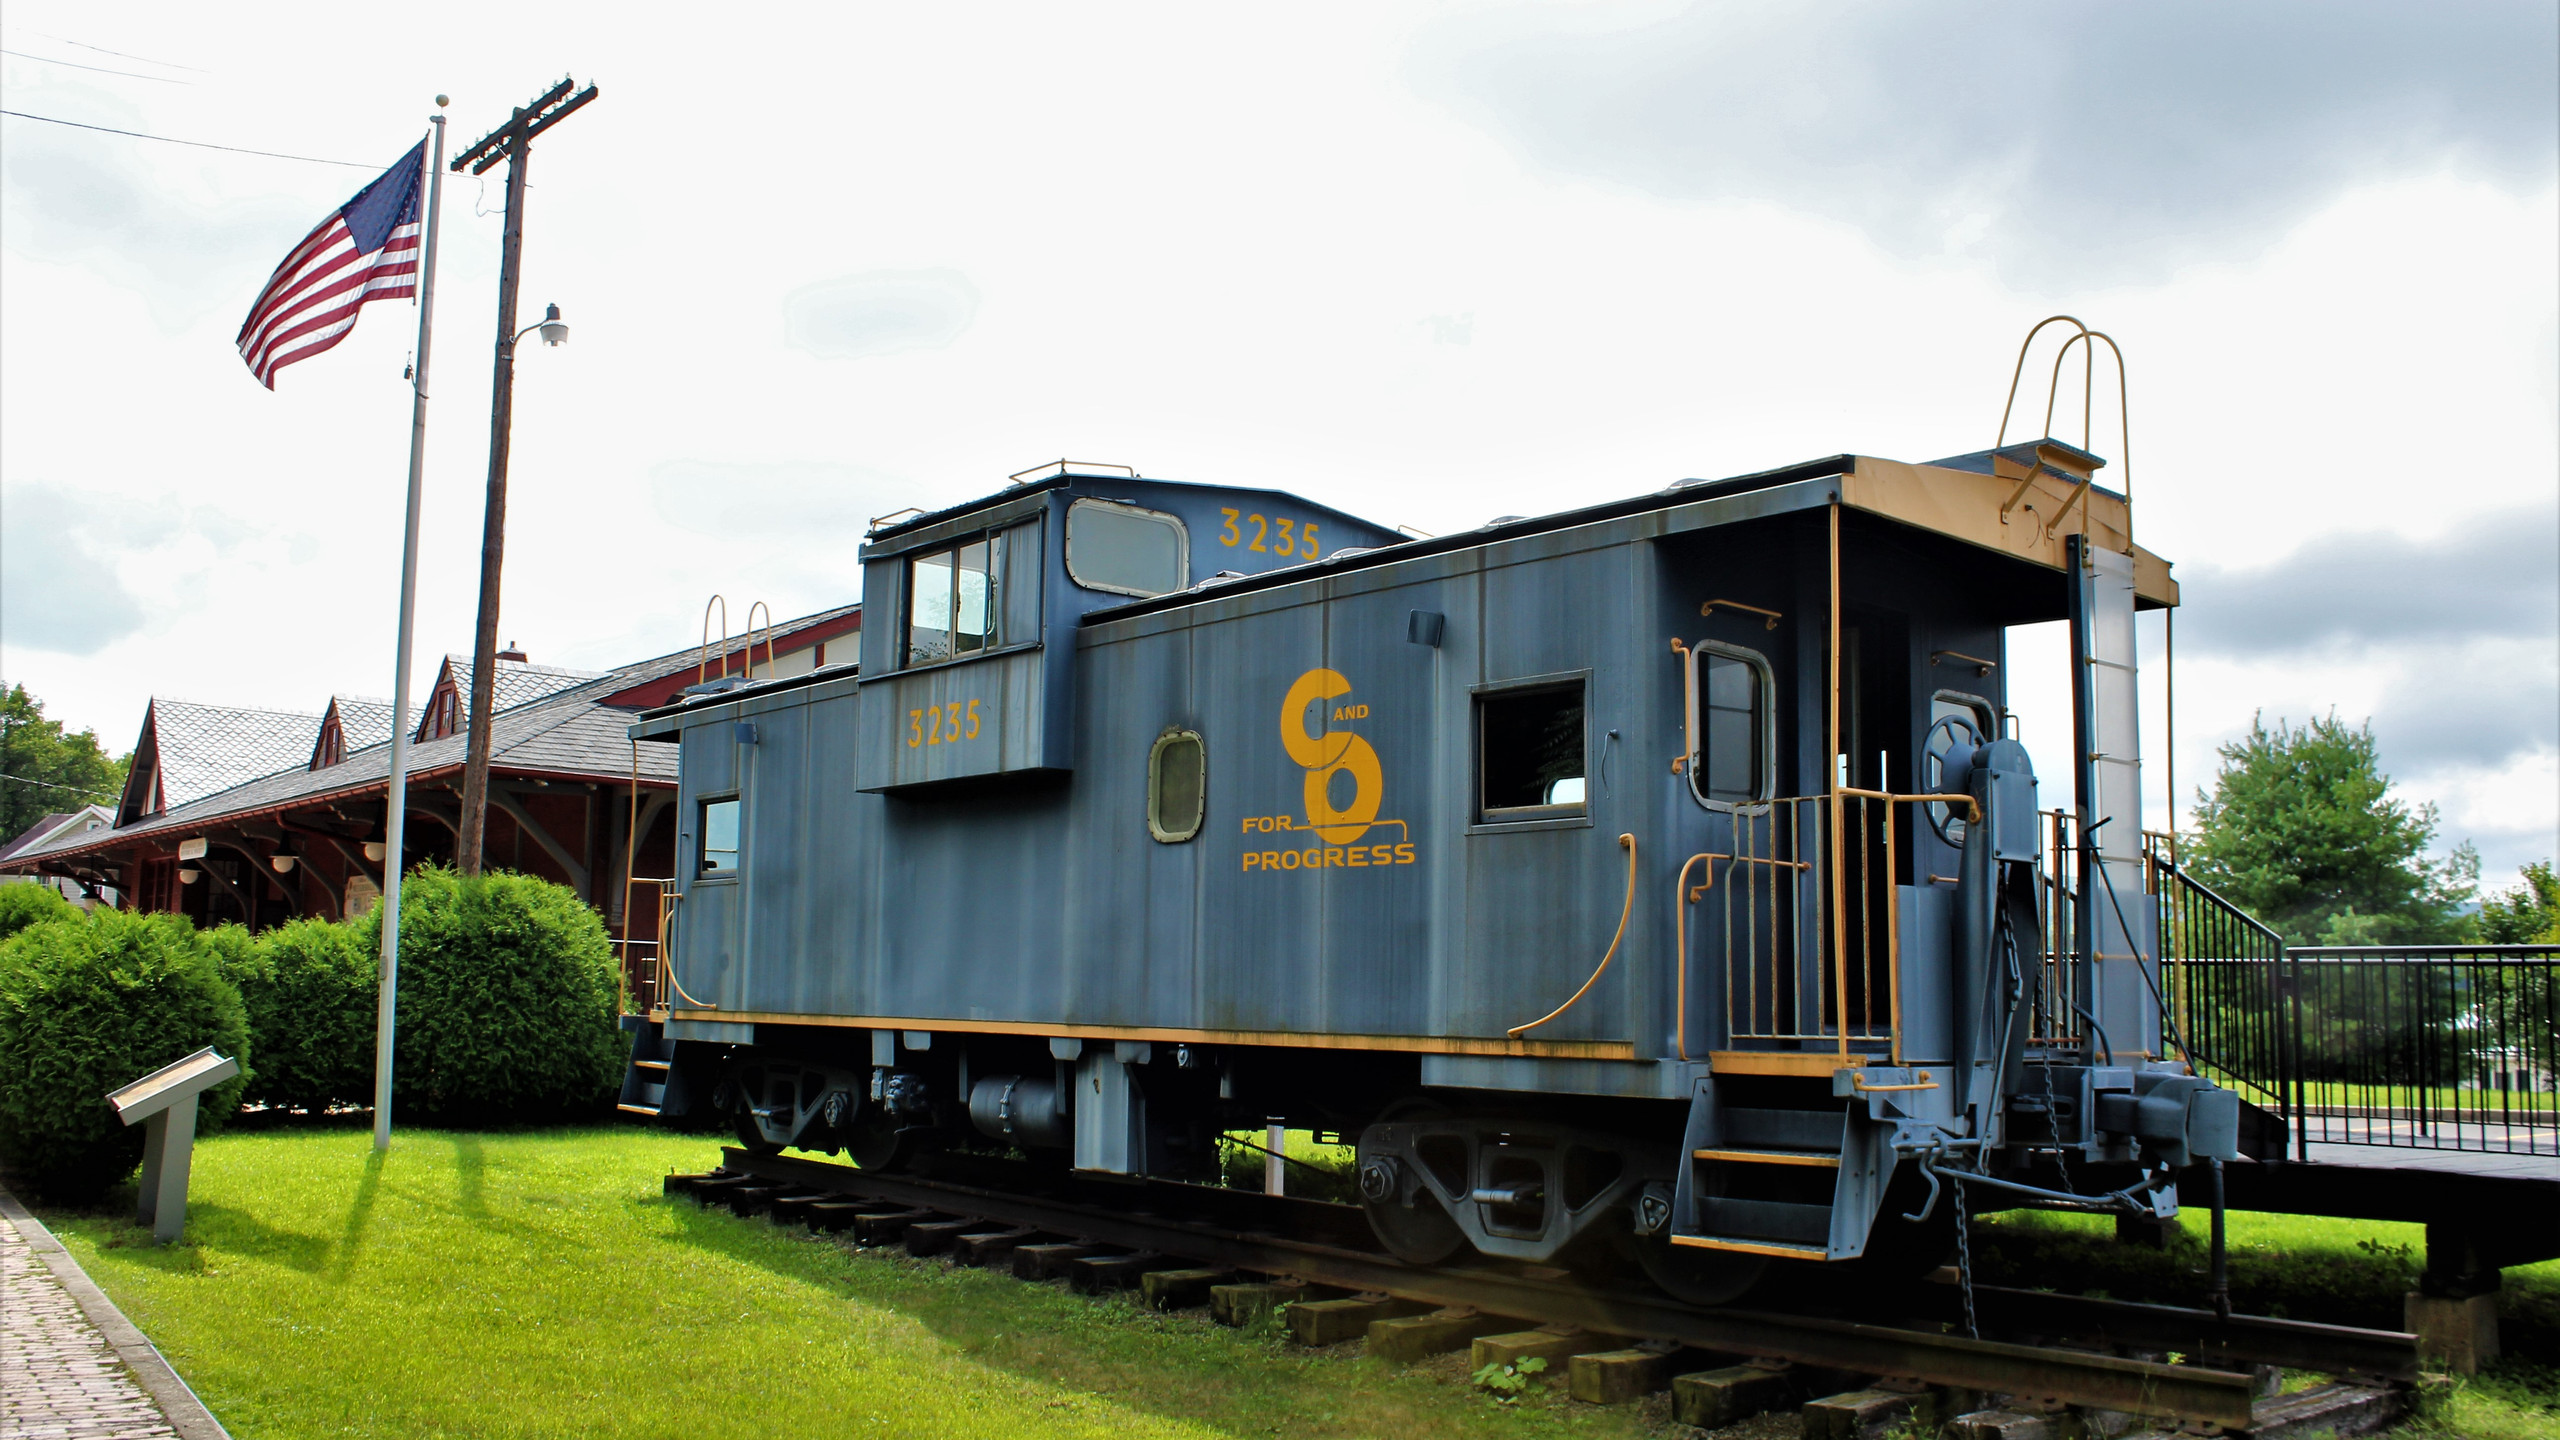 Caboose at Meyersdale